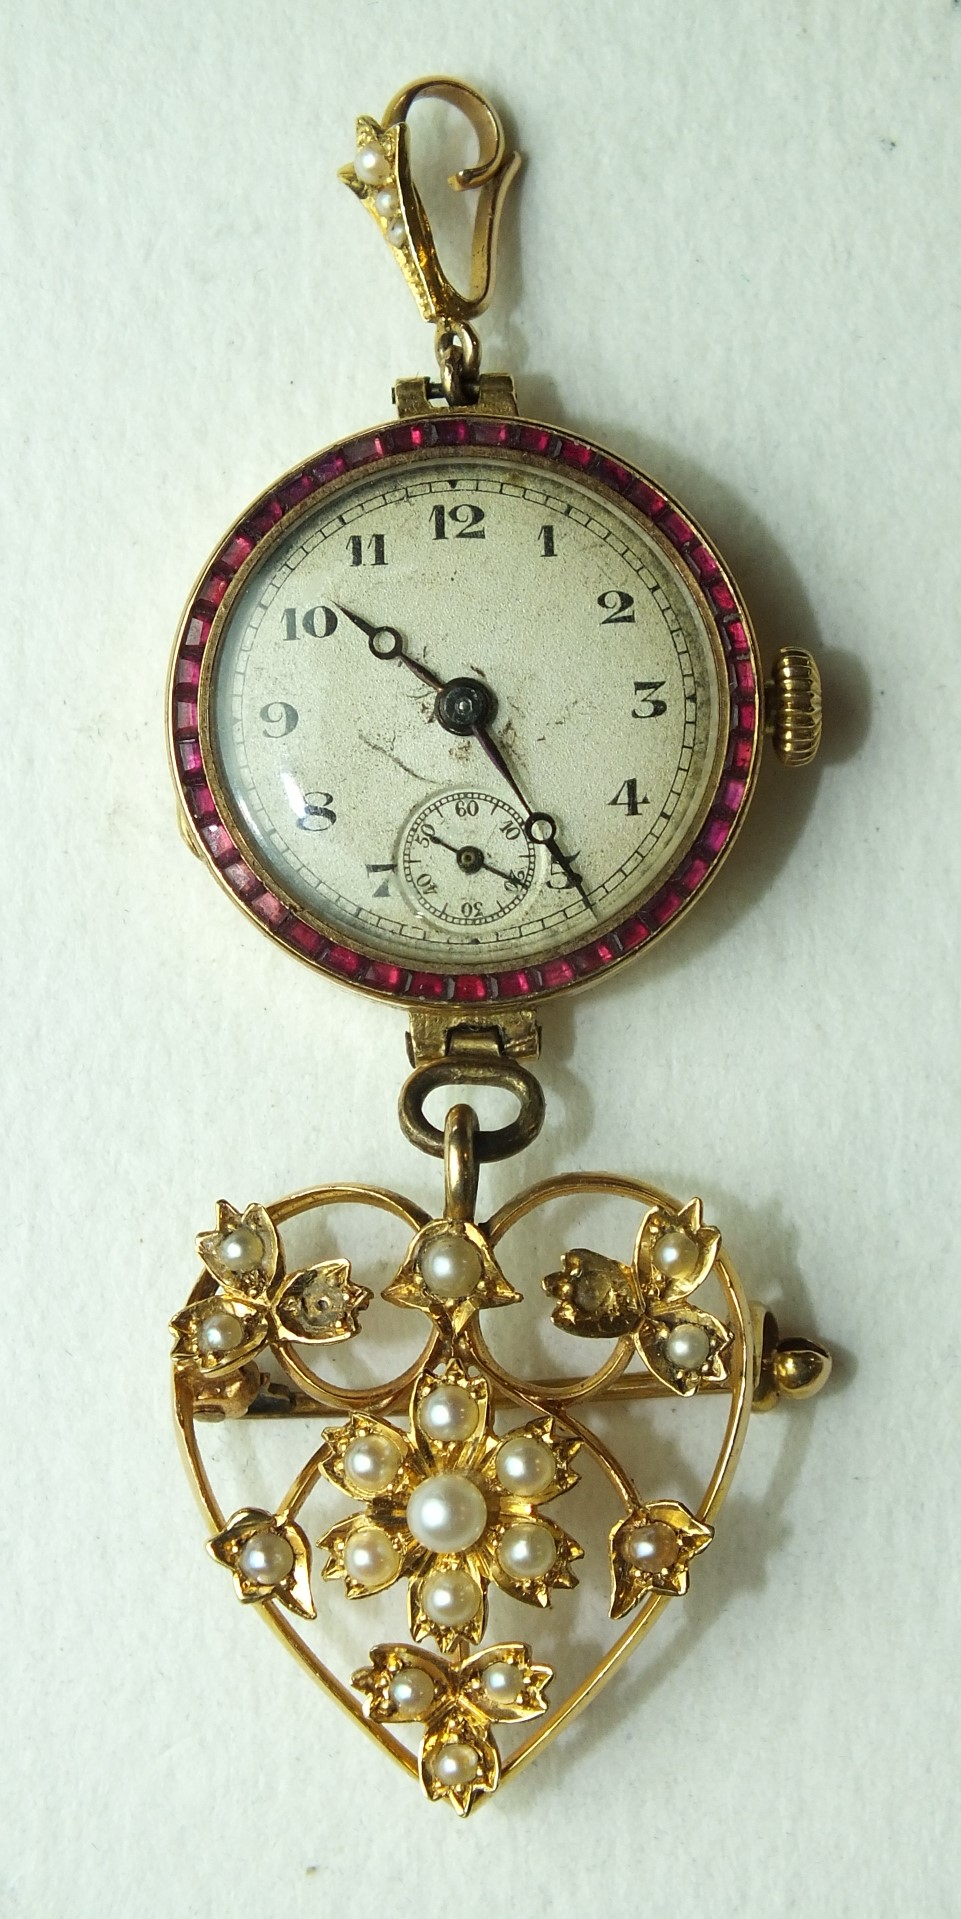 Lot 192 - An 18ct-gold-cased wrist watch, (not working), with ruby-set bezel mounted as a fob watch, with a